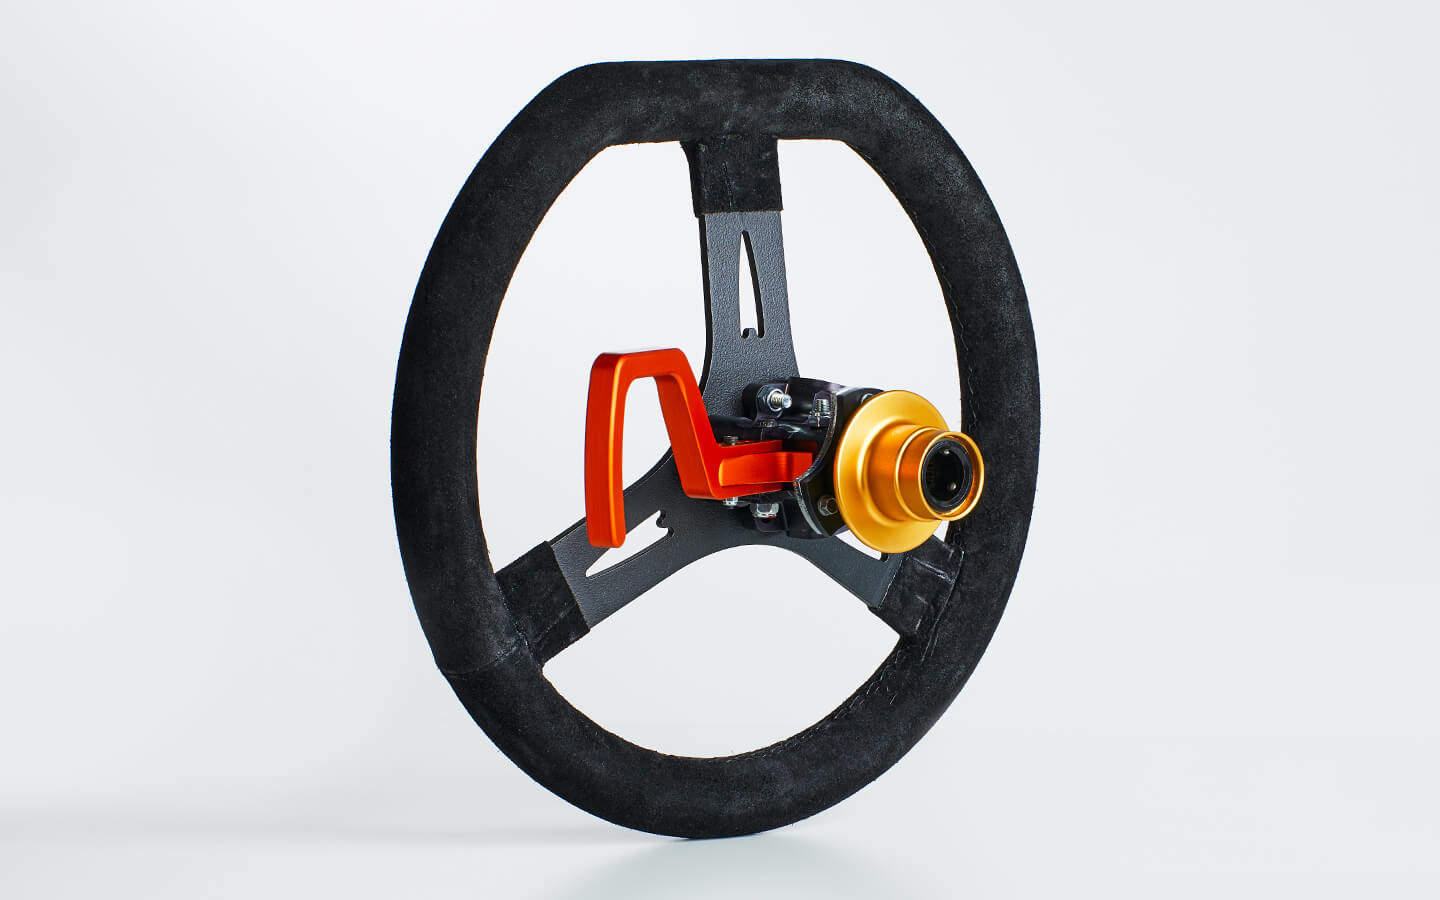 Quick release steering wheel and hydraulic hand clutch